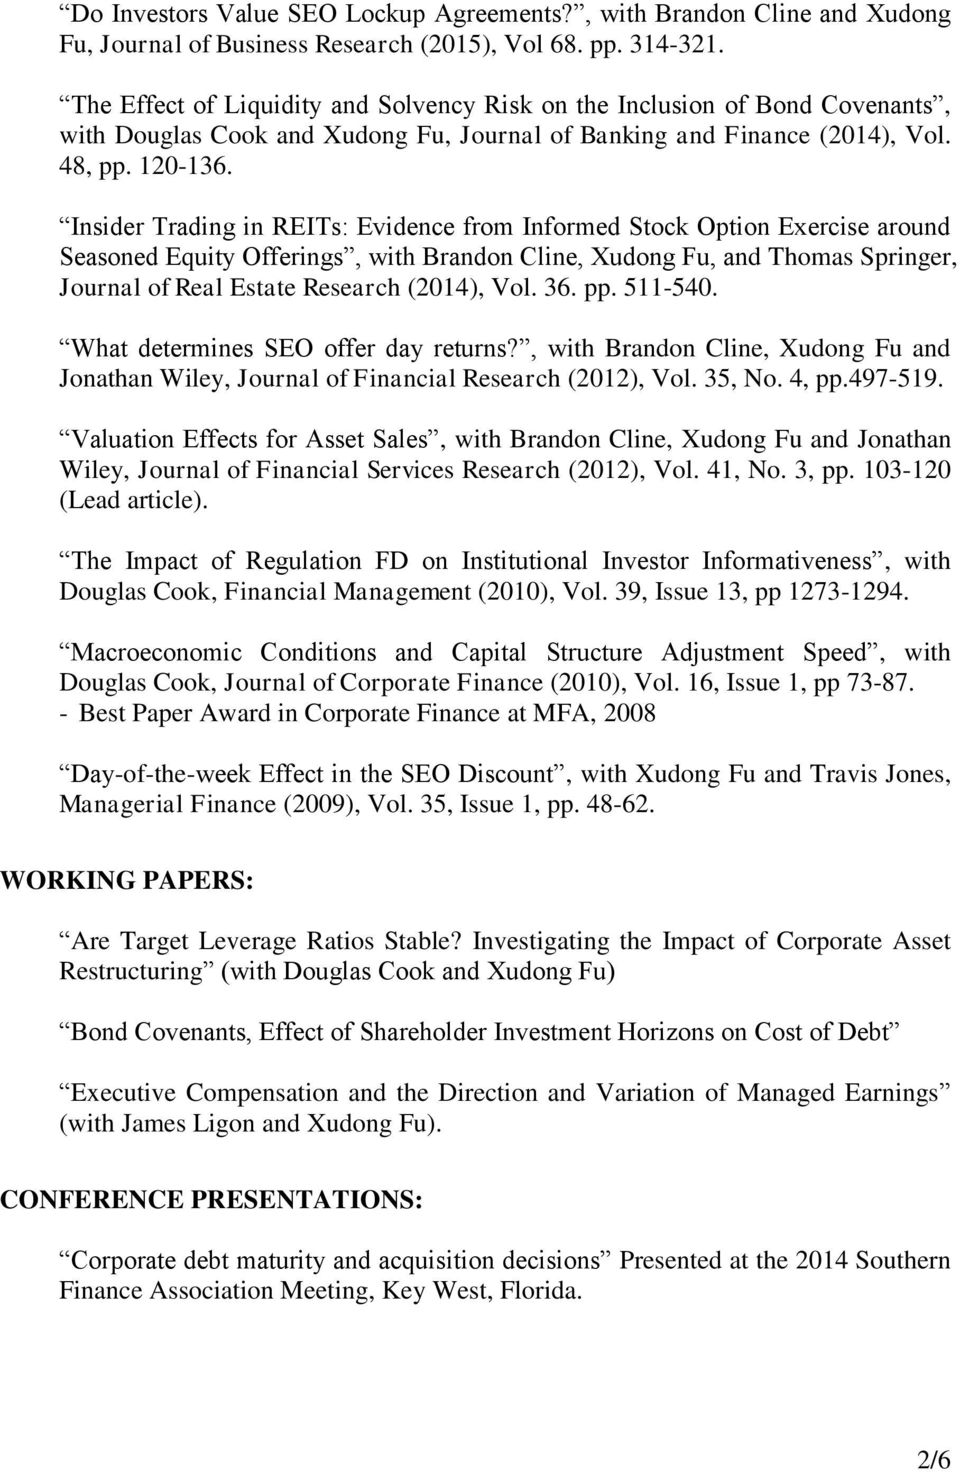 Insider Trading in REITs: Evidence from Informed Stock Option Exercise around Seasoned Equity Offerings, with Brandon Cline, Xudong Fu, and Thomas Springer, Journal of Real Estate Research (2014),